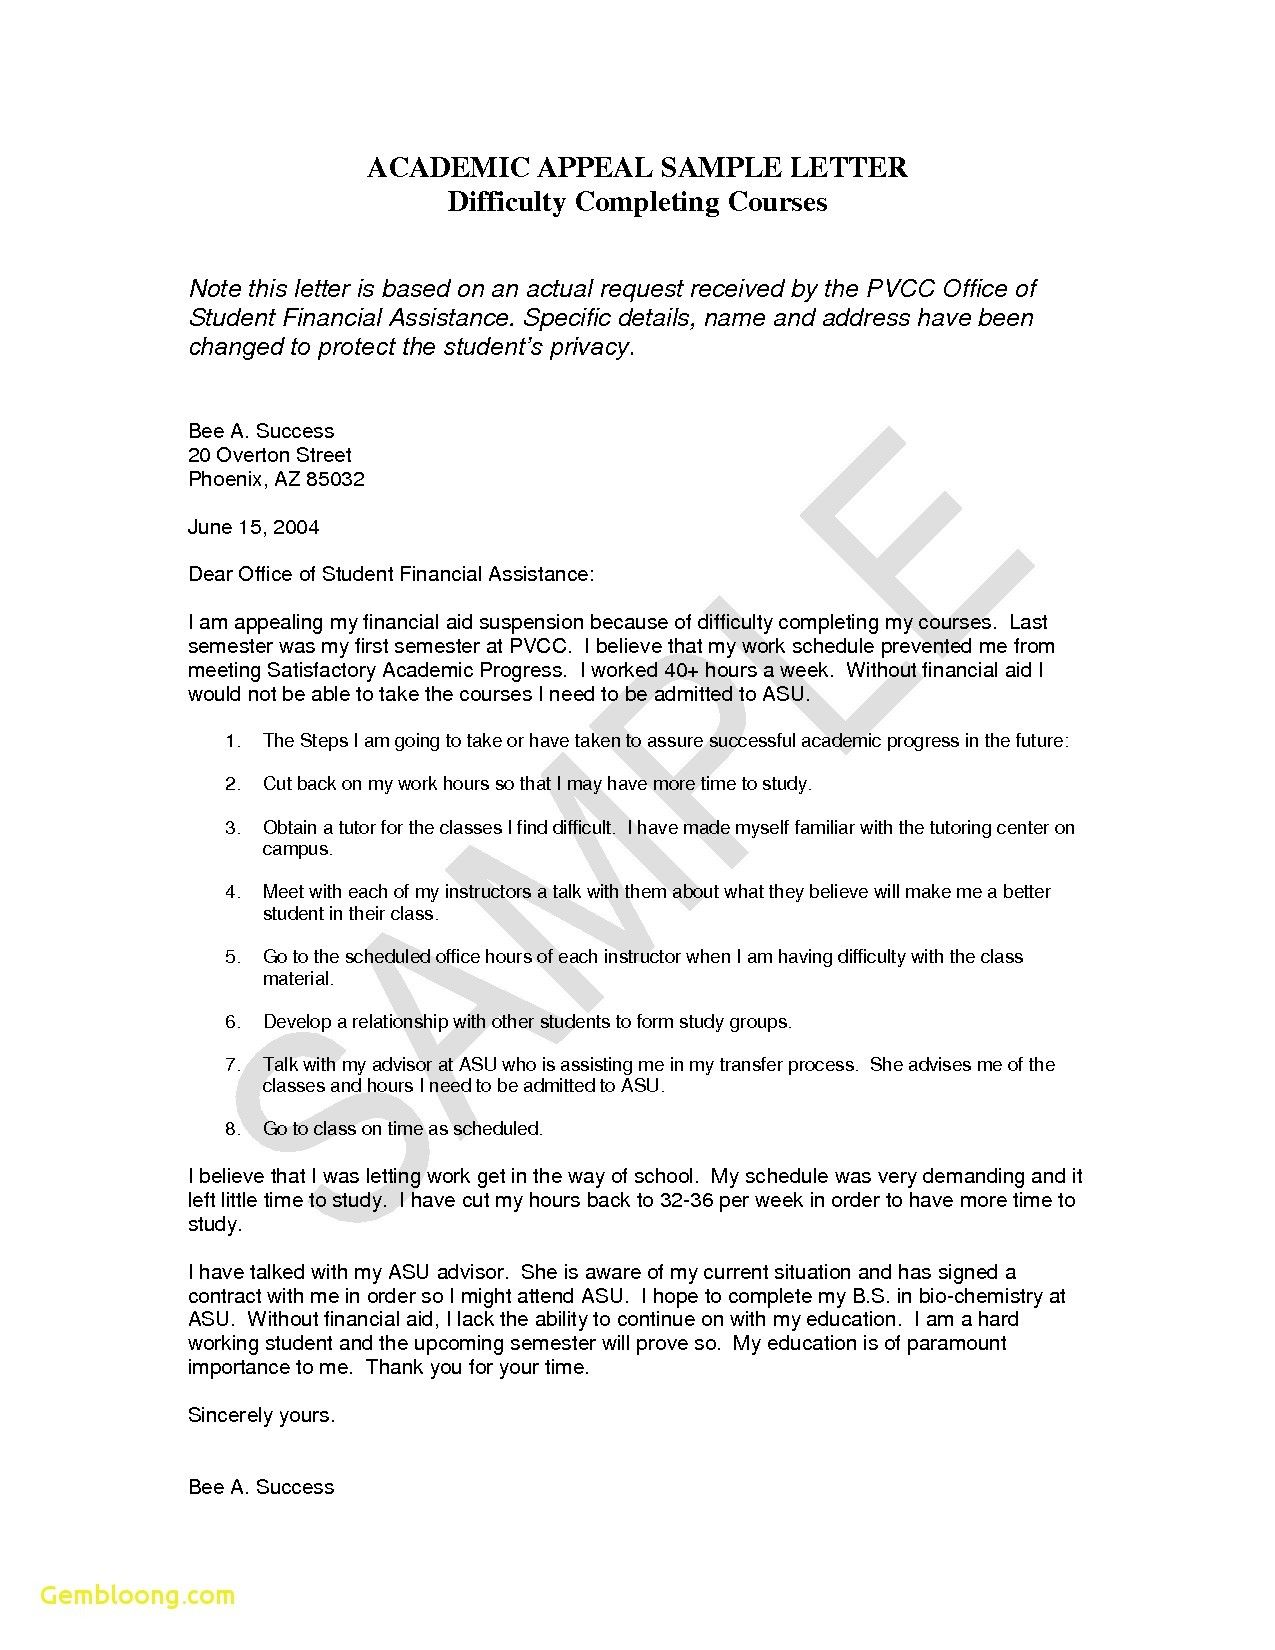 new how to write appeal letter for financial support professional resume format download in ms word hr director free templates 2019